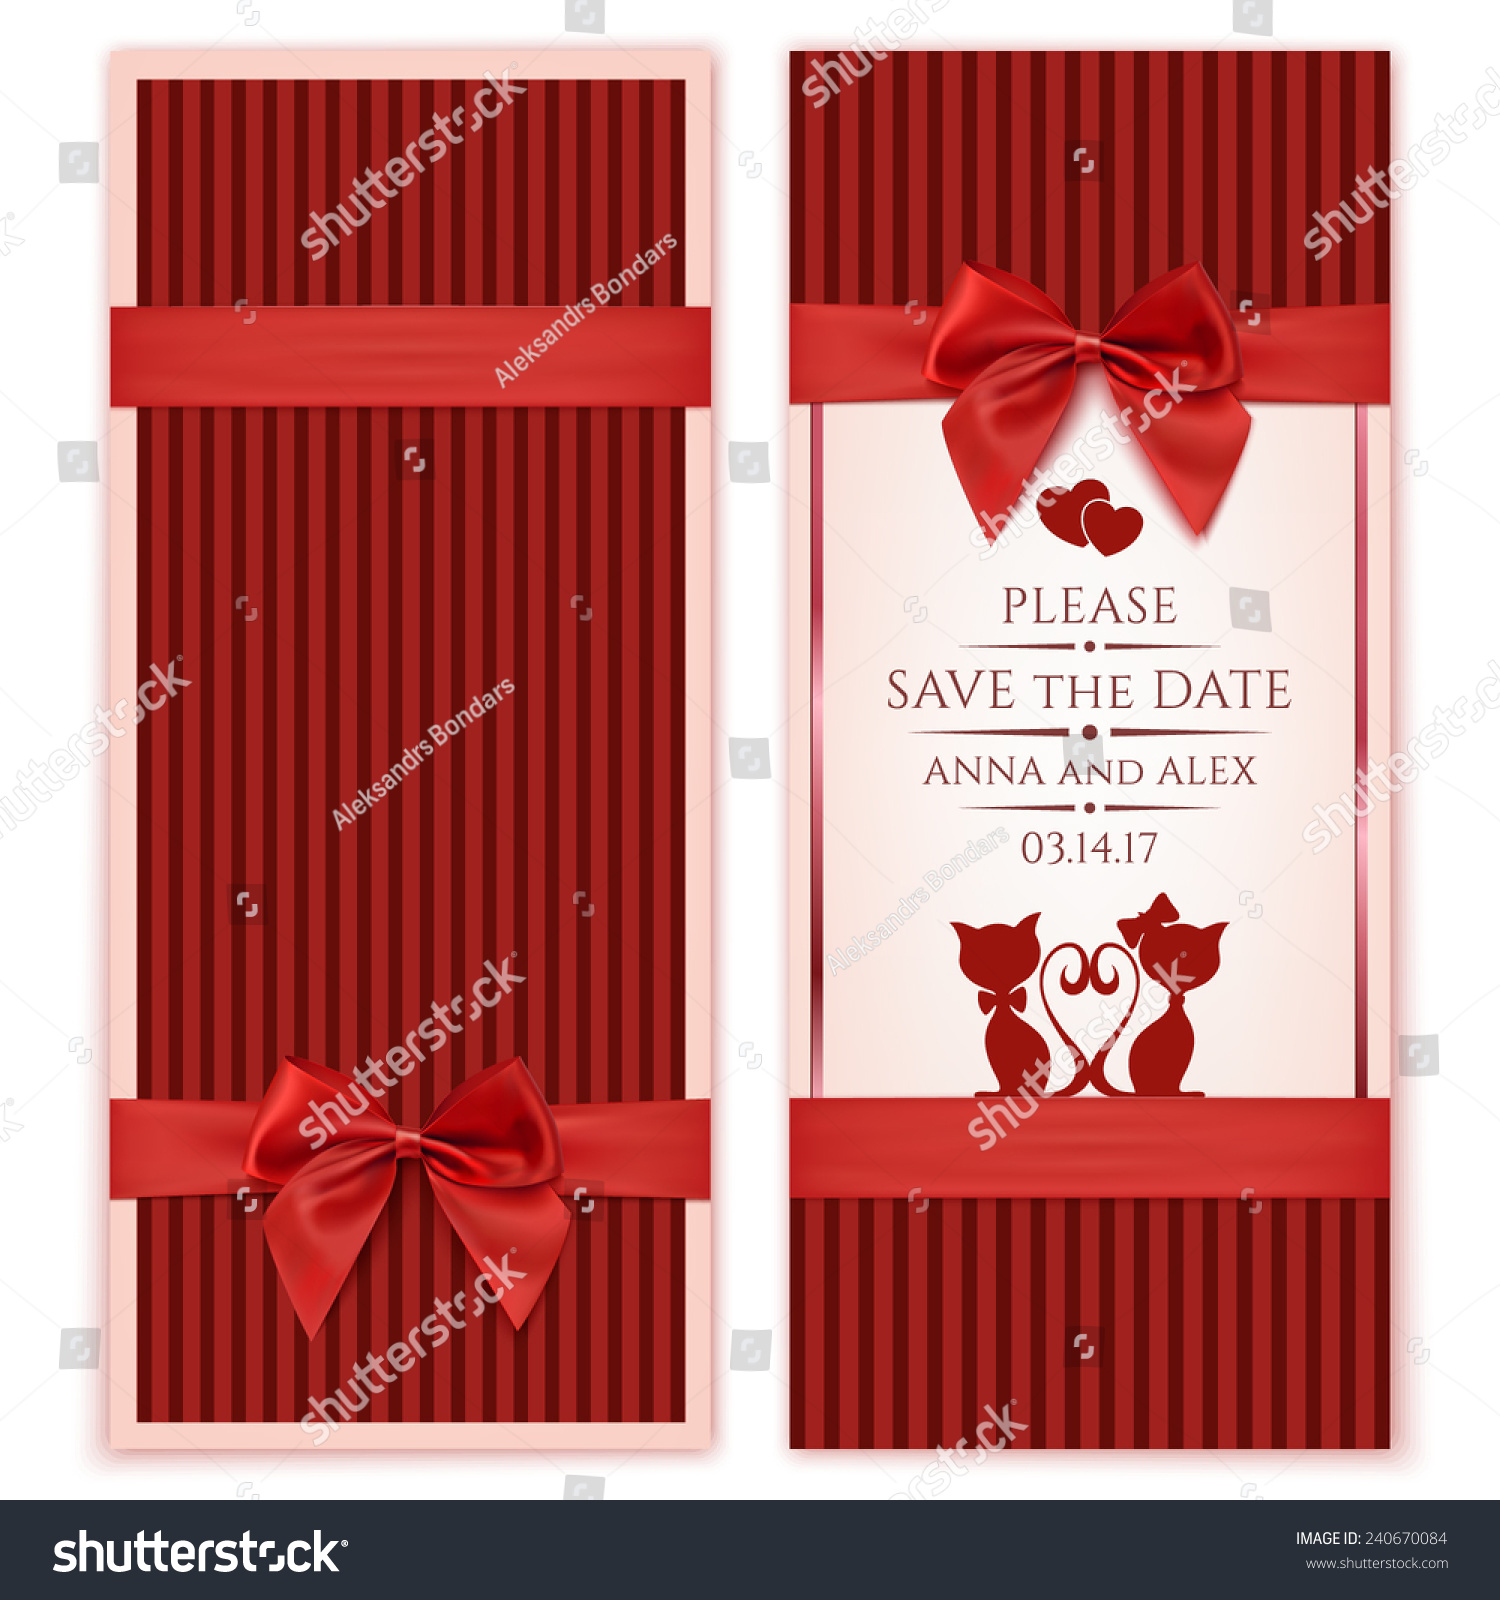 Save Date Wedding Invitation Card Vintage Stock Vector (Royalty Free ...